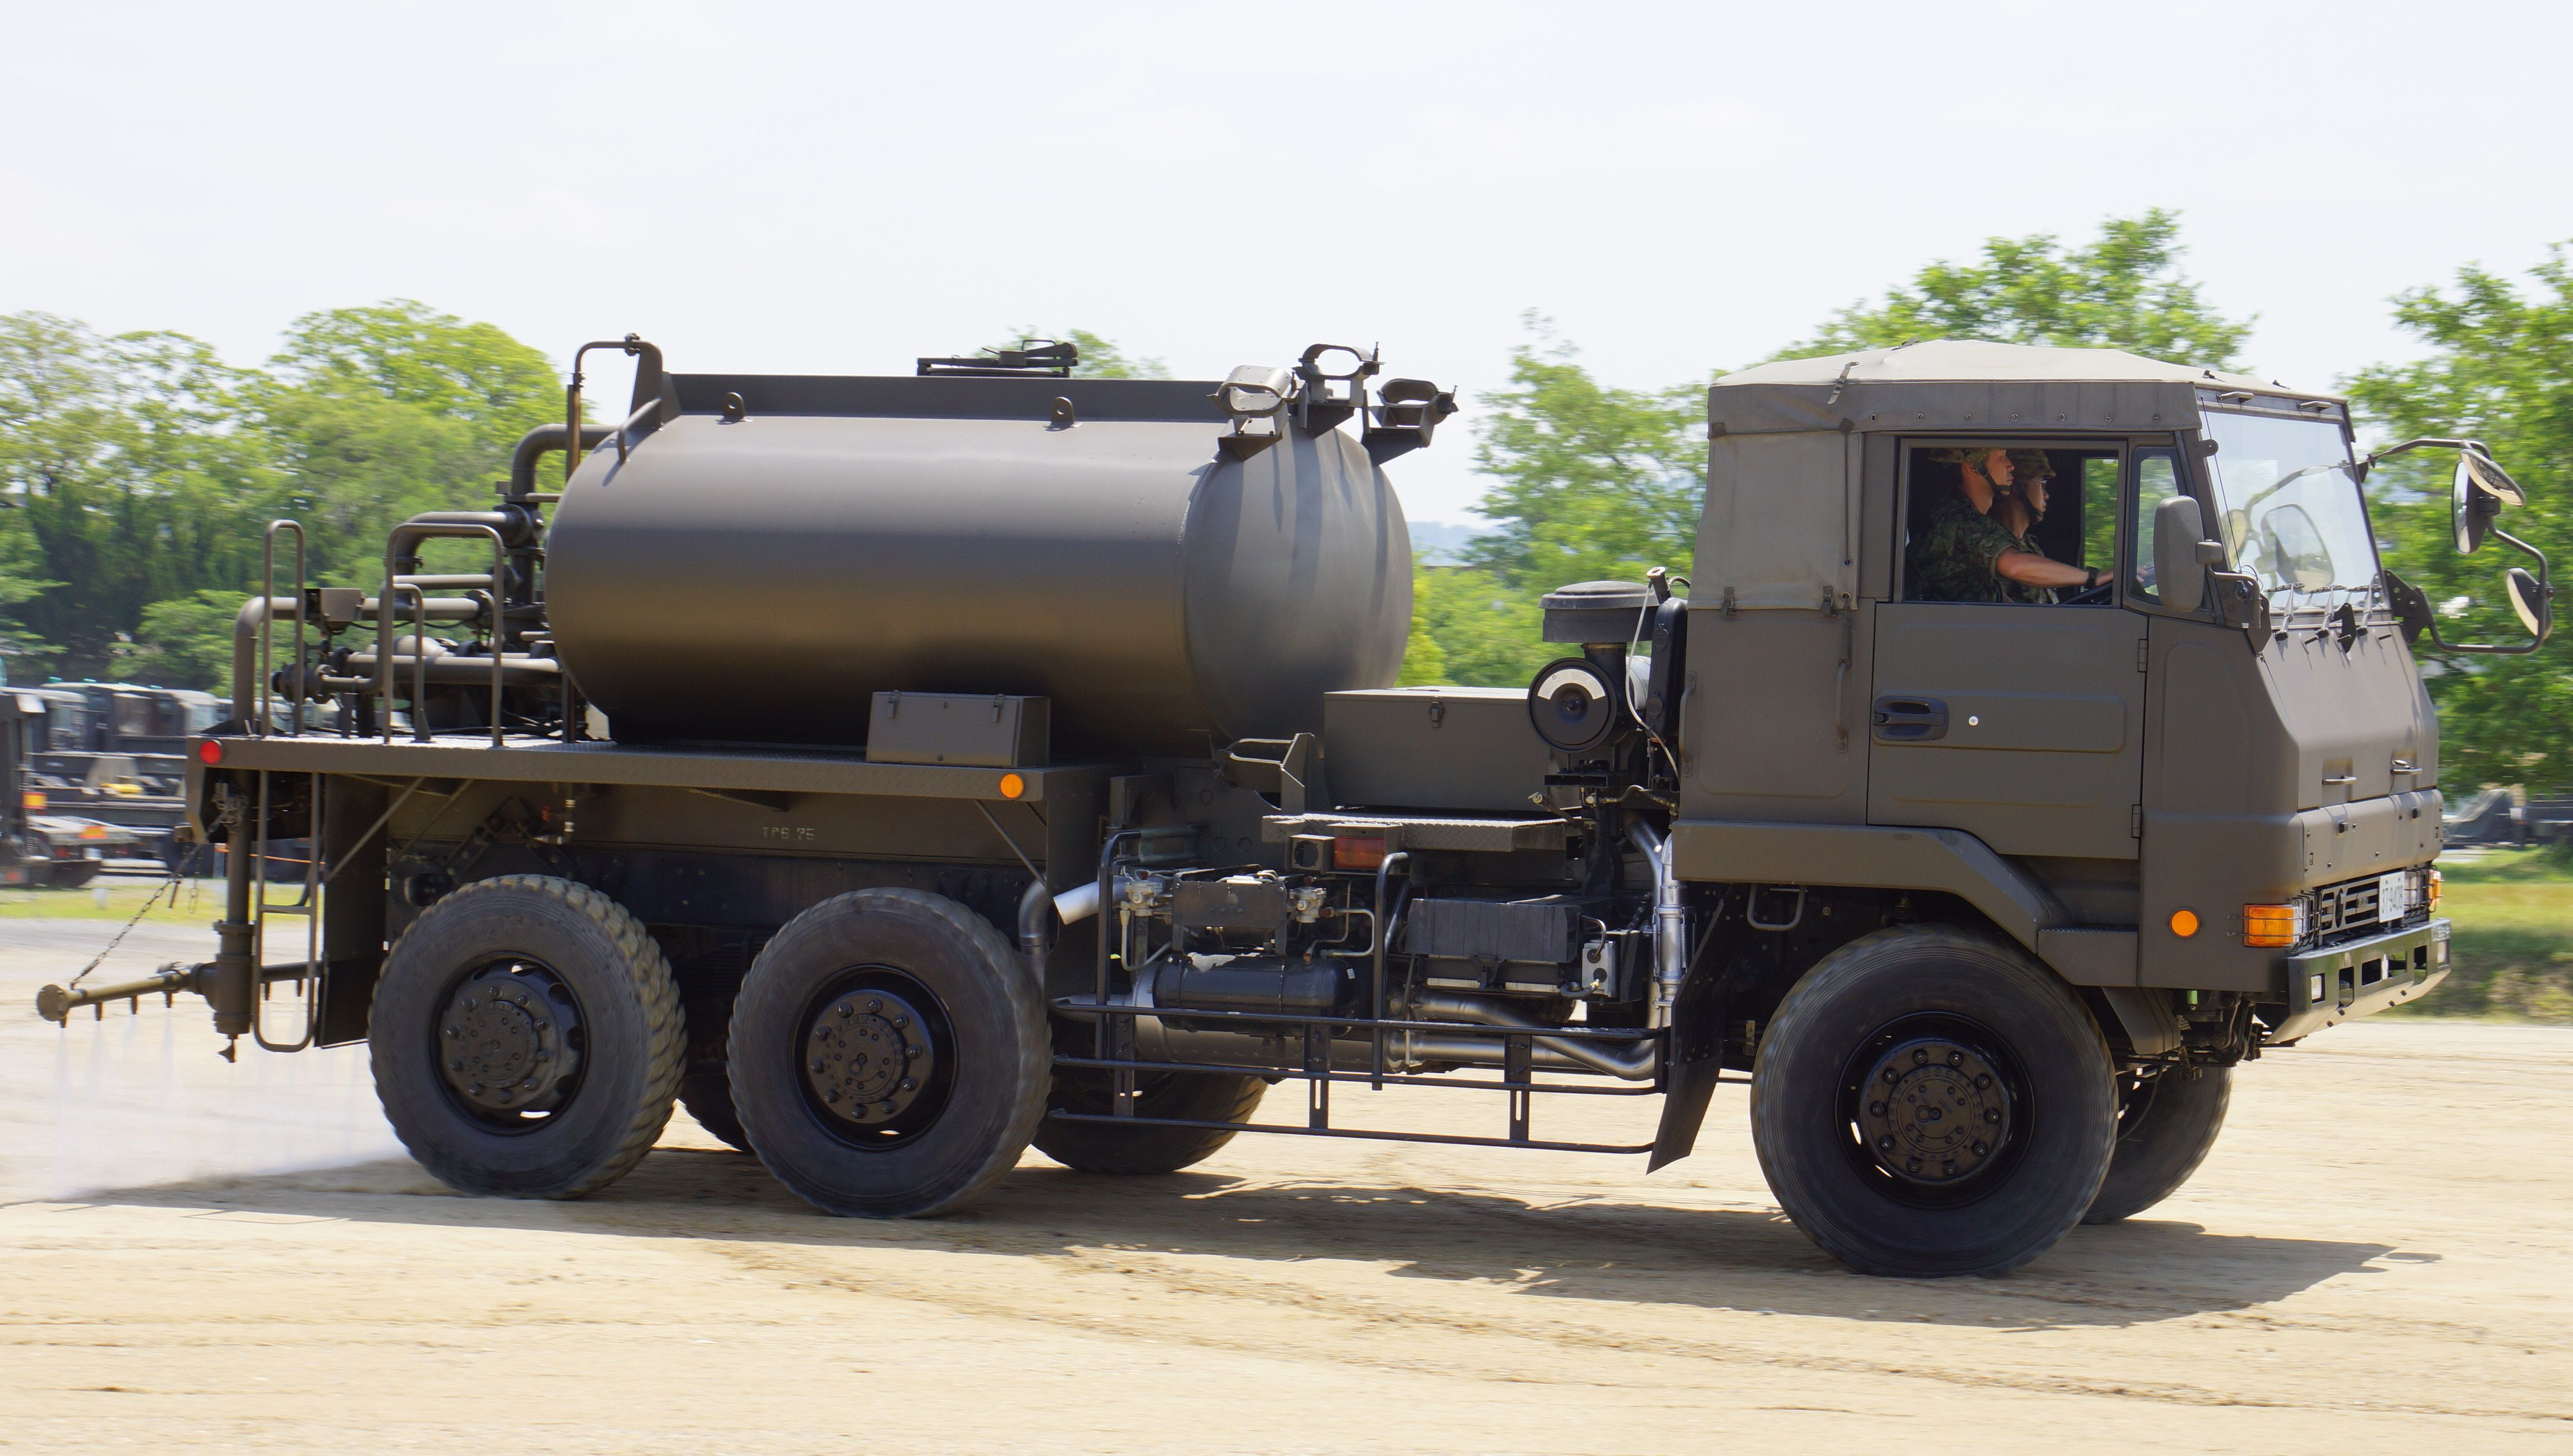 Water Truck Google Search In 2020 Military Vehicles Cold War Military Trucks